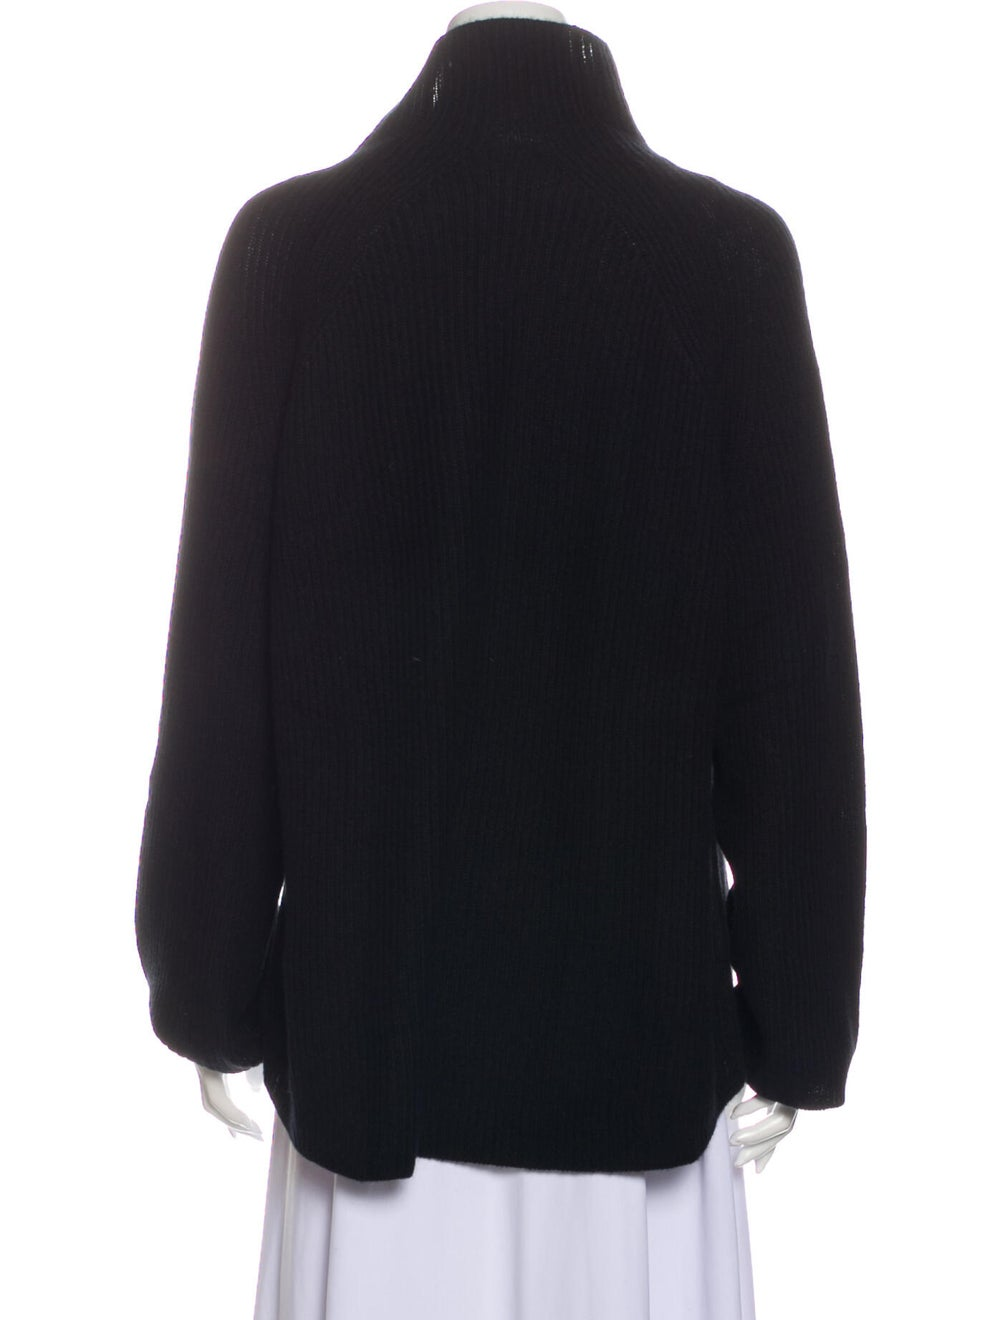 Naked Cashmere Cashmere Turtleneck Sweater Black - image 3